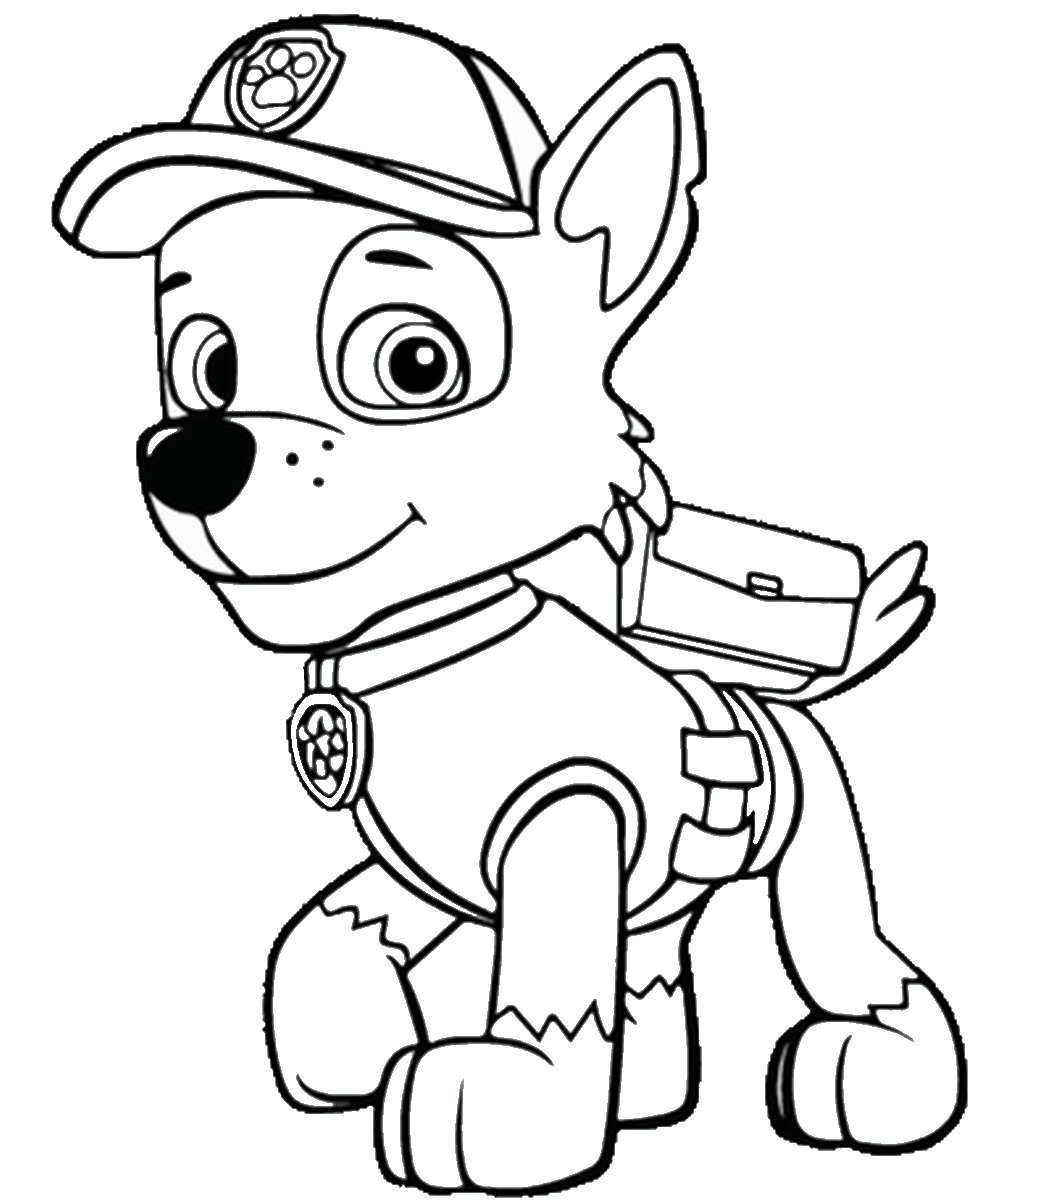 Nick jr summer coloring pages - Paw Patrol Coloring Pages Printable